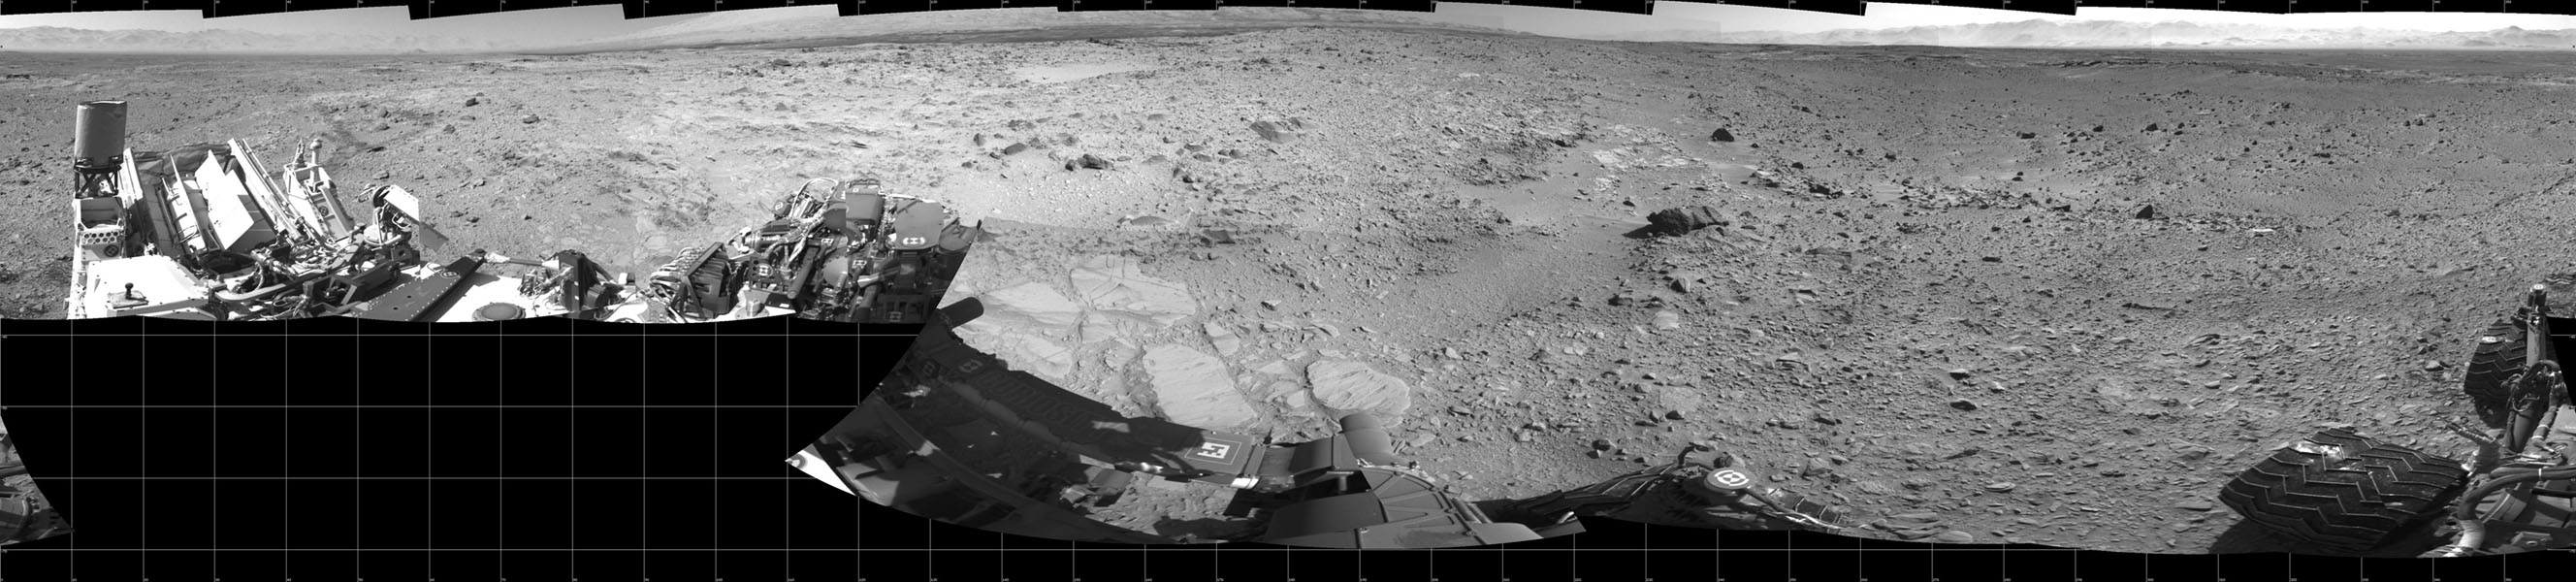 The rock-studded terrain NASA's Mars rover Curiosity has traversed since October 2013 appears to have accelerated the pace of wear and tear on the rover's wheels. Future drives may be charted to cross smoother ground where available.